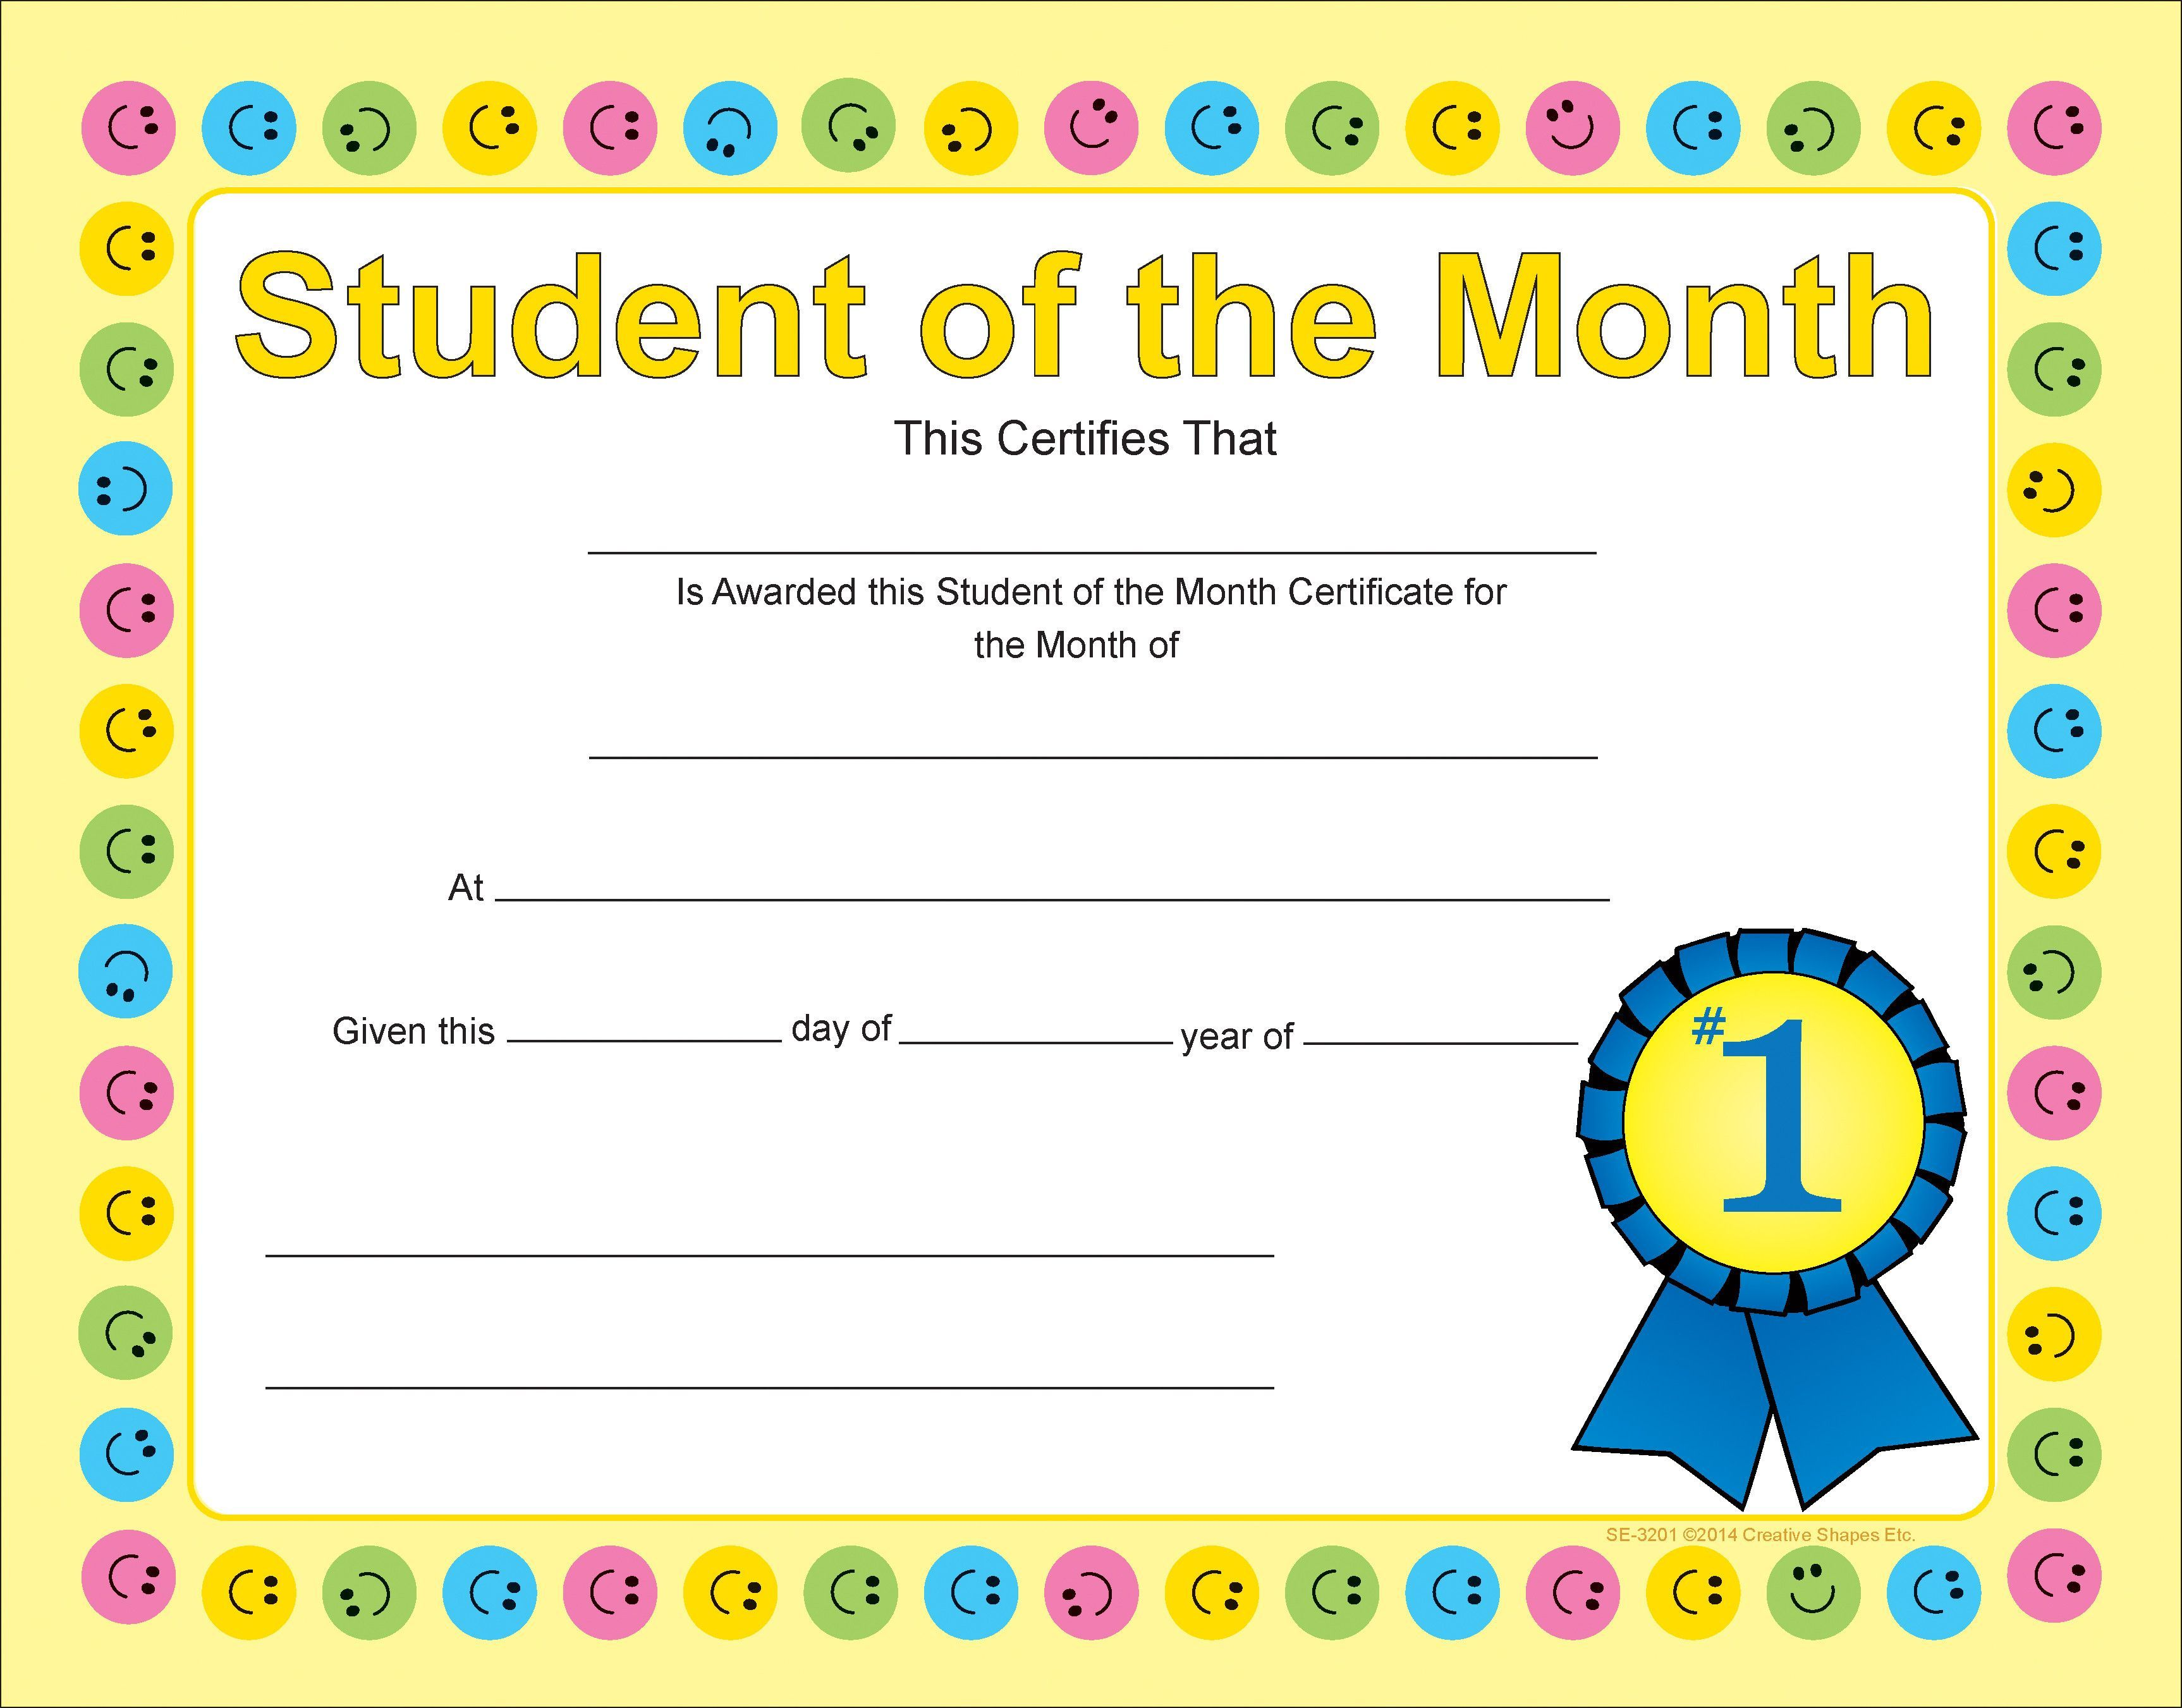 Recognition Certificate Student Of The Month Student Of The Month Certificate Templates Certificate Of Achievement Template Student of the month award template